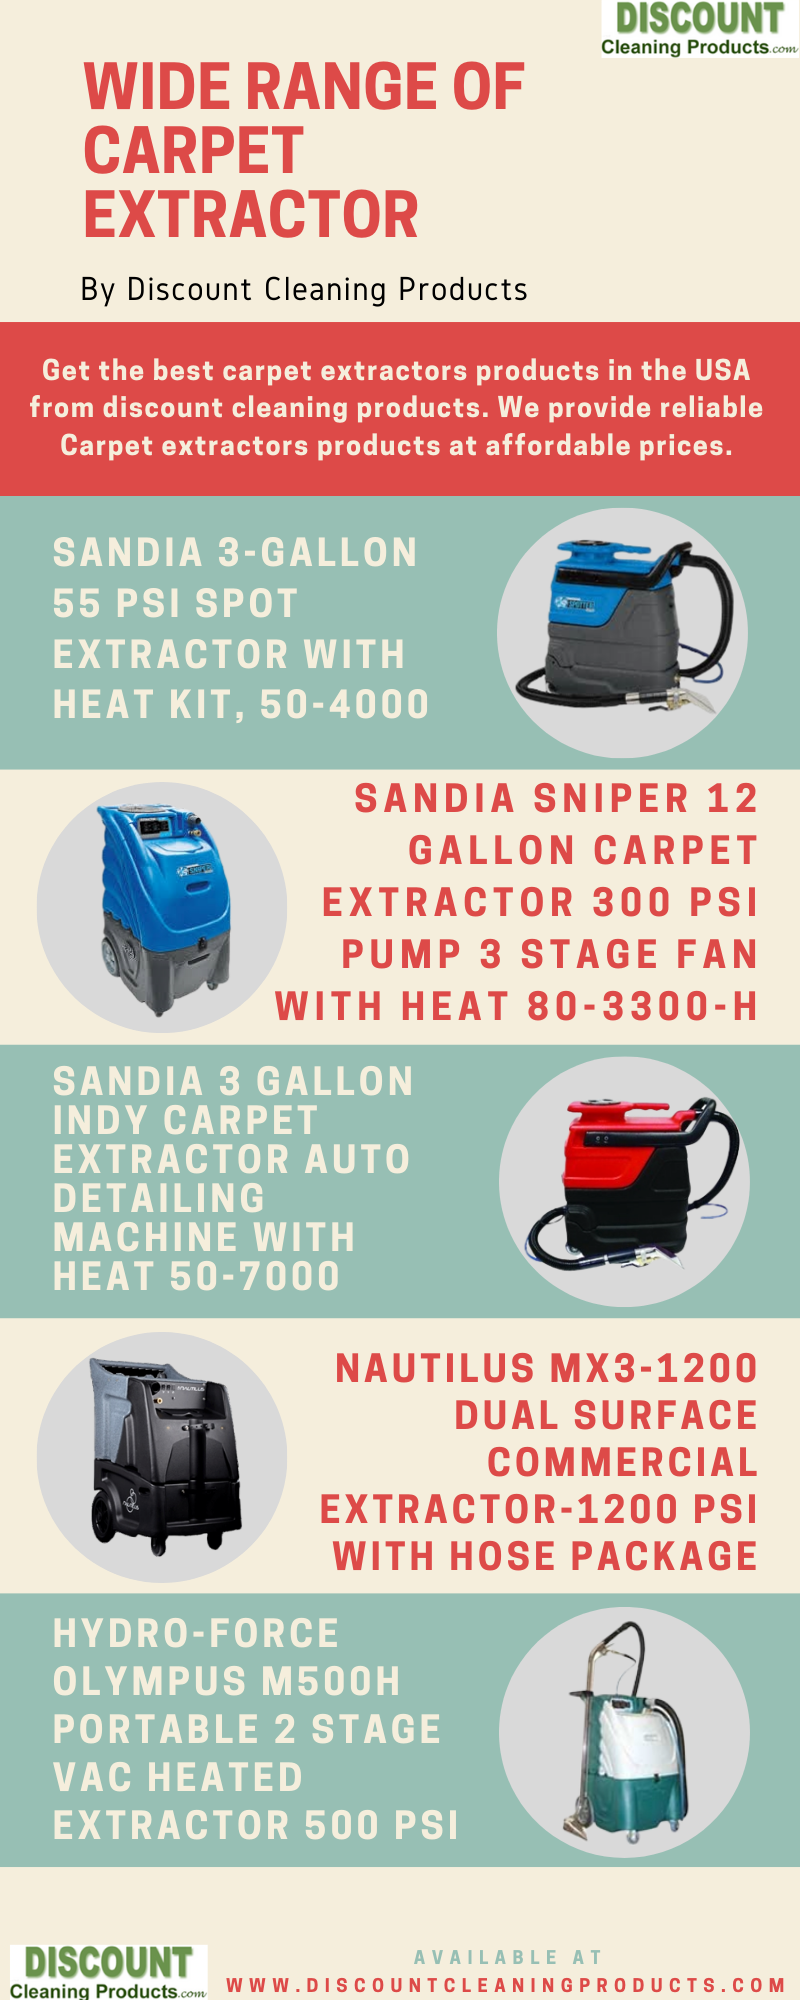 Discount Cleaning Products Serve You The Best Carpet Extractors Products In Usa Durable Carpet Discount Cleaning How To Clean Carpet